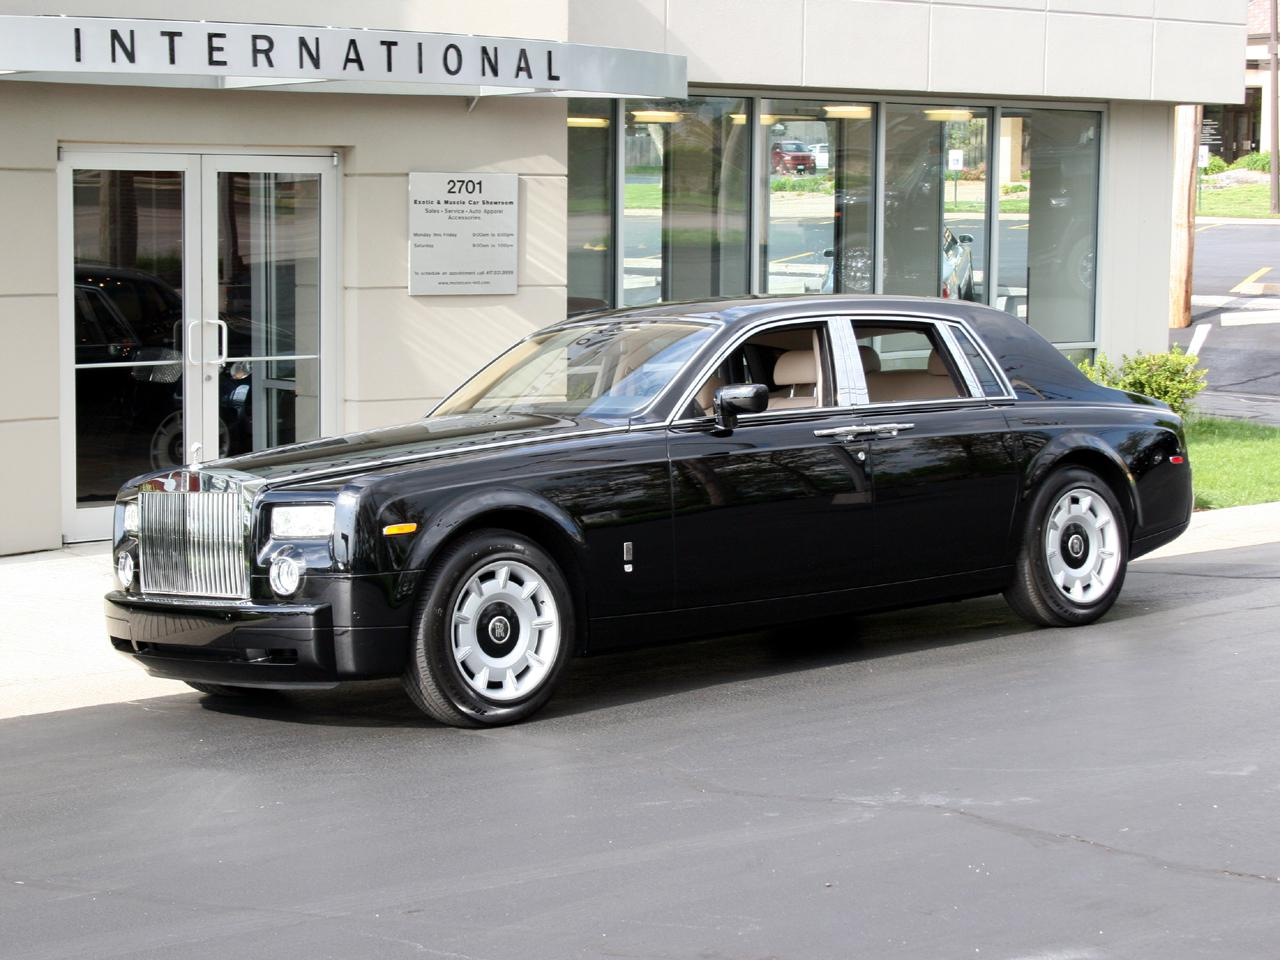 2004 Rolls royce Phantom #6